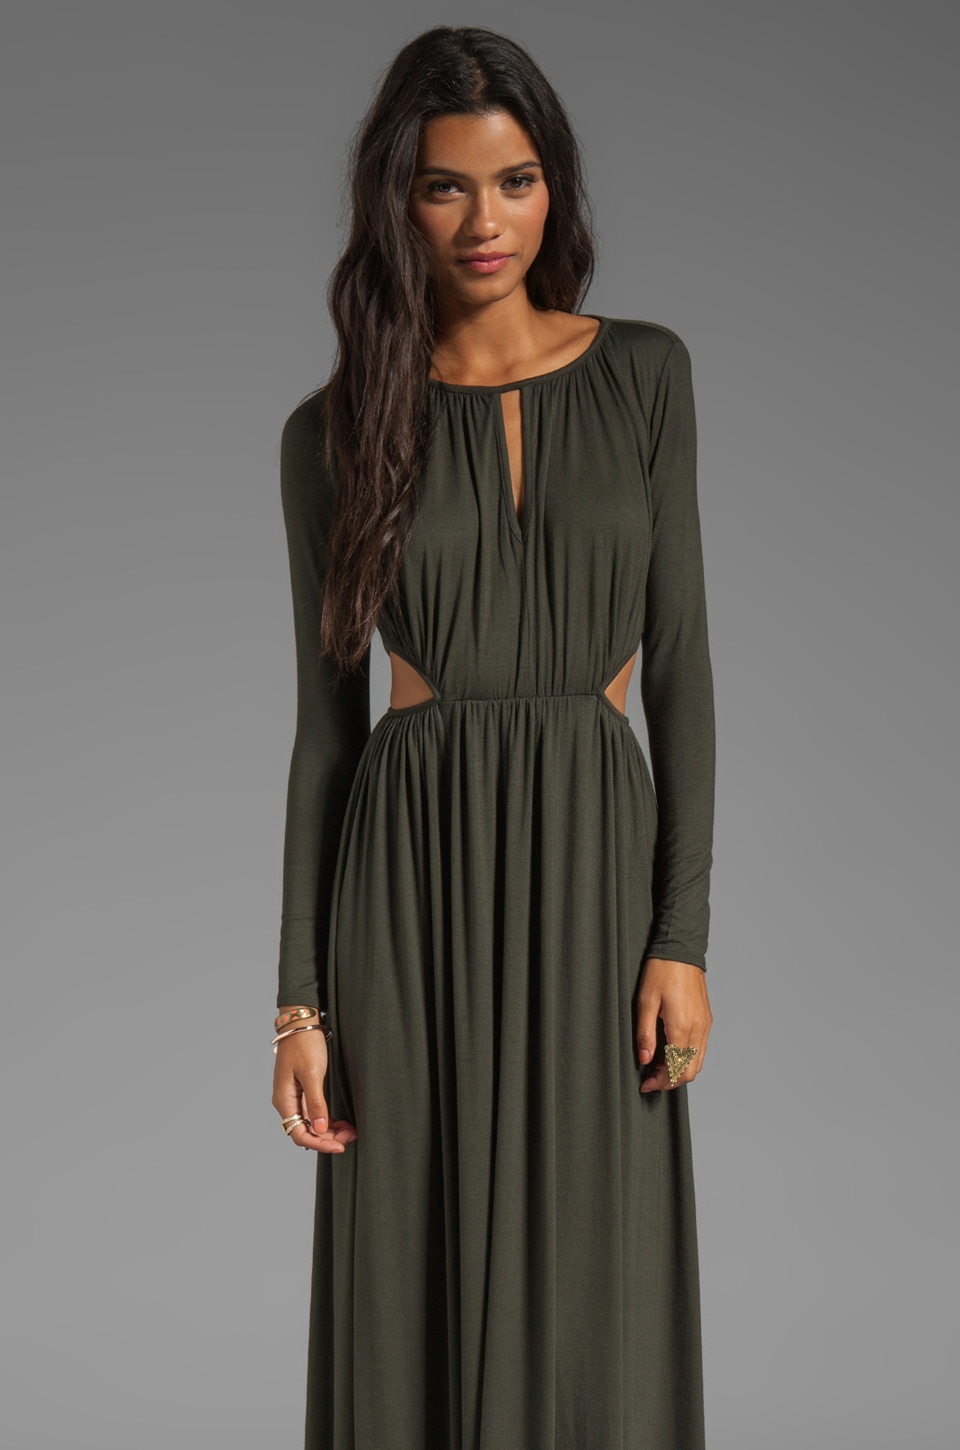 Rachel Pally Jazz Dress in Pine